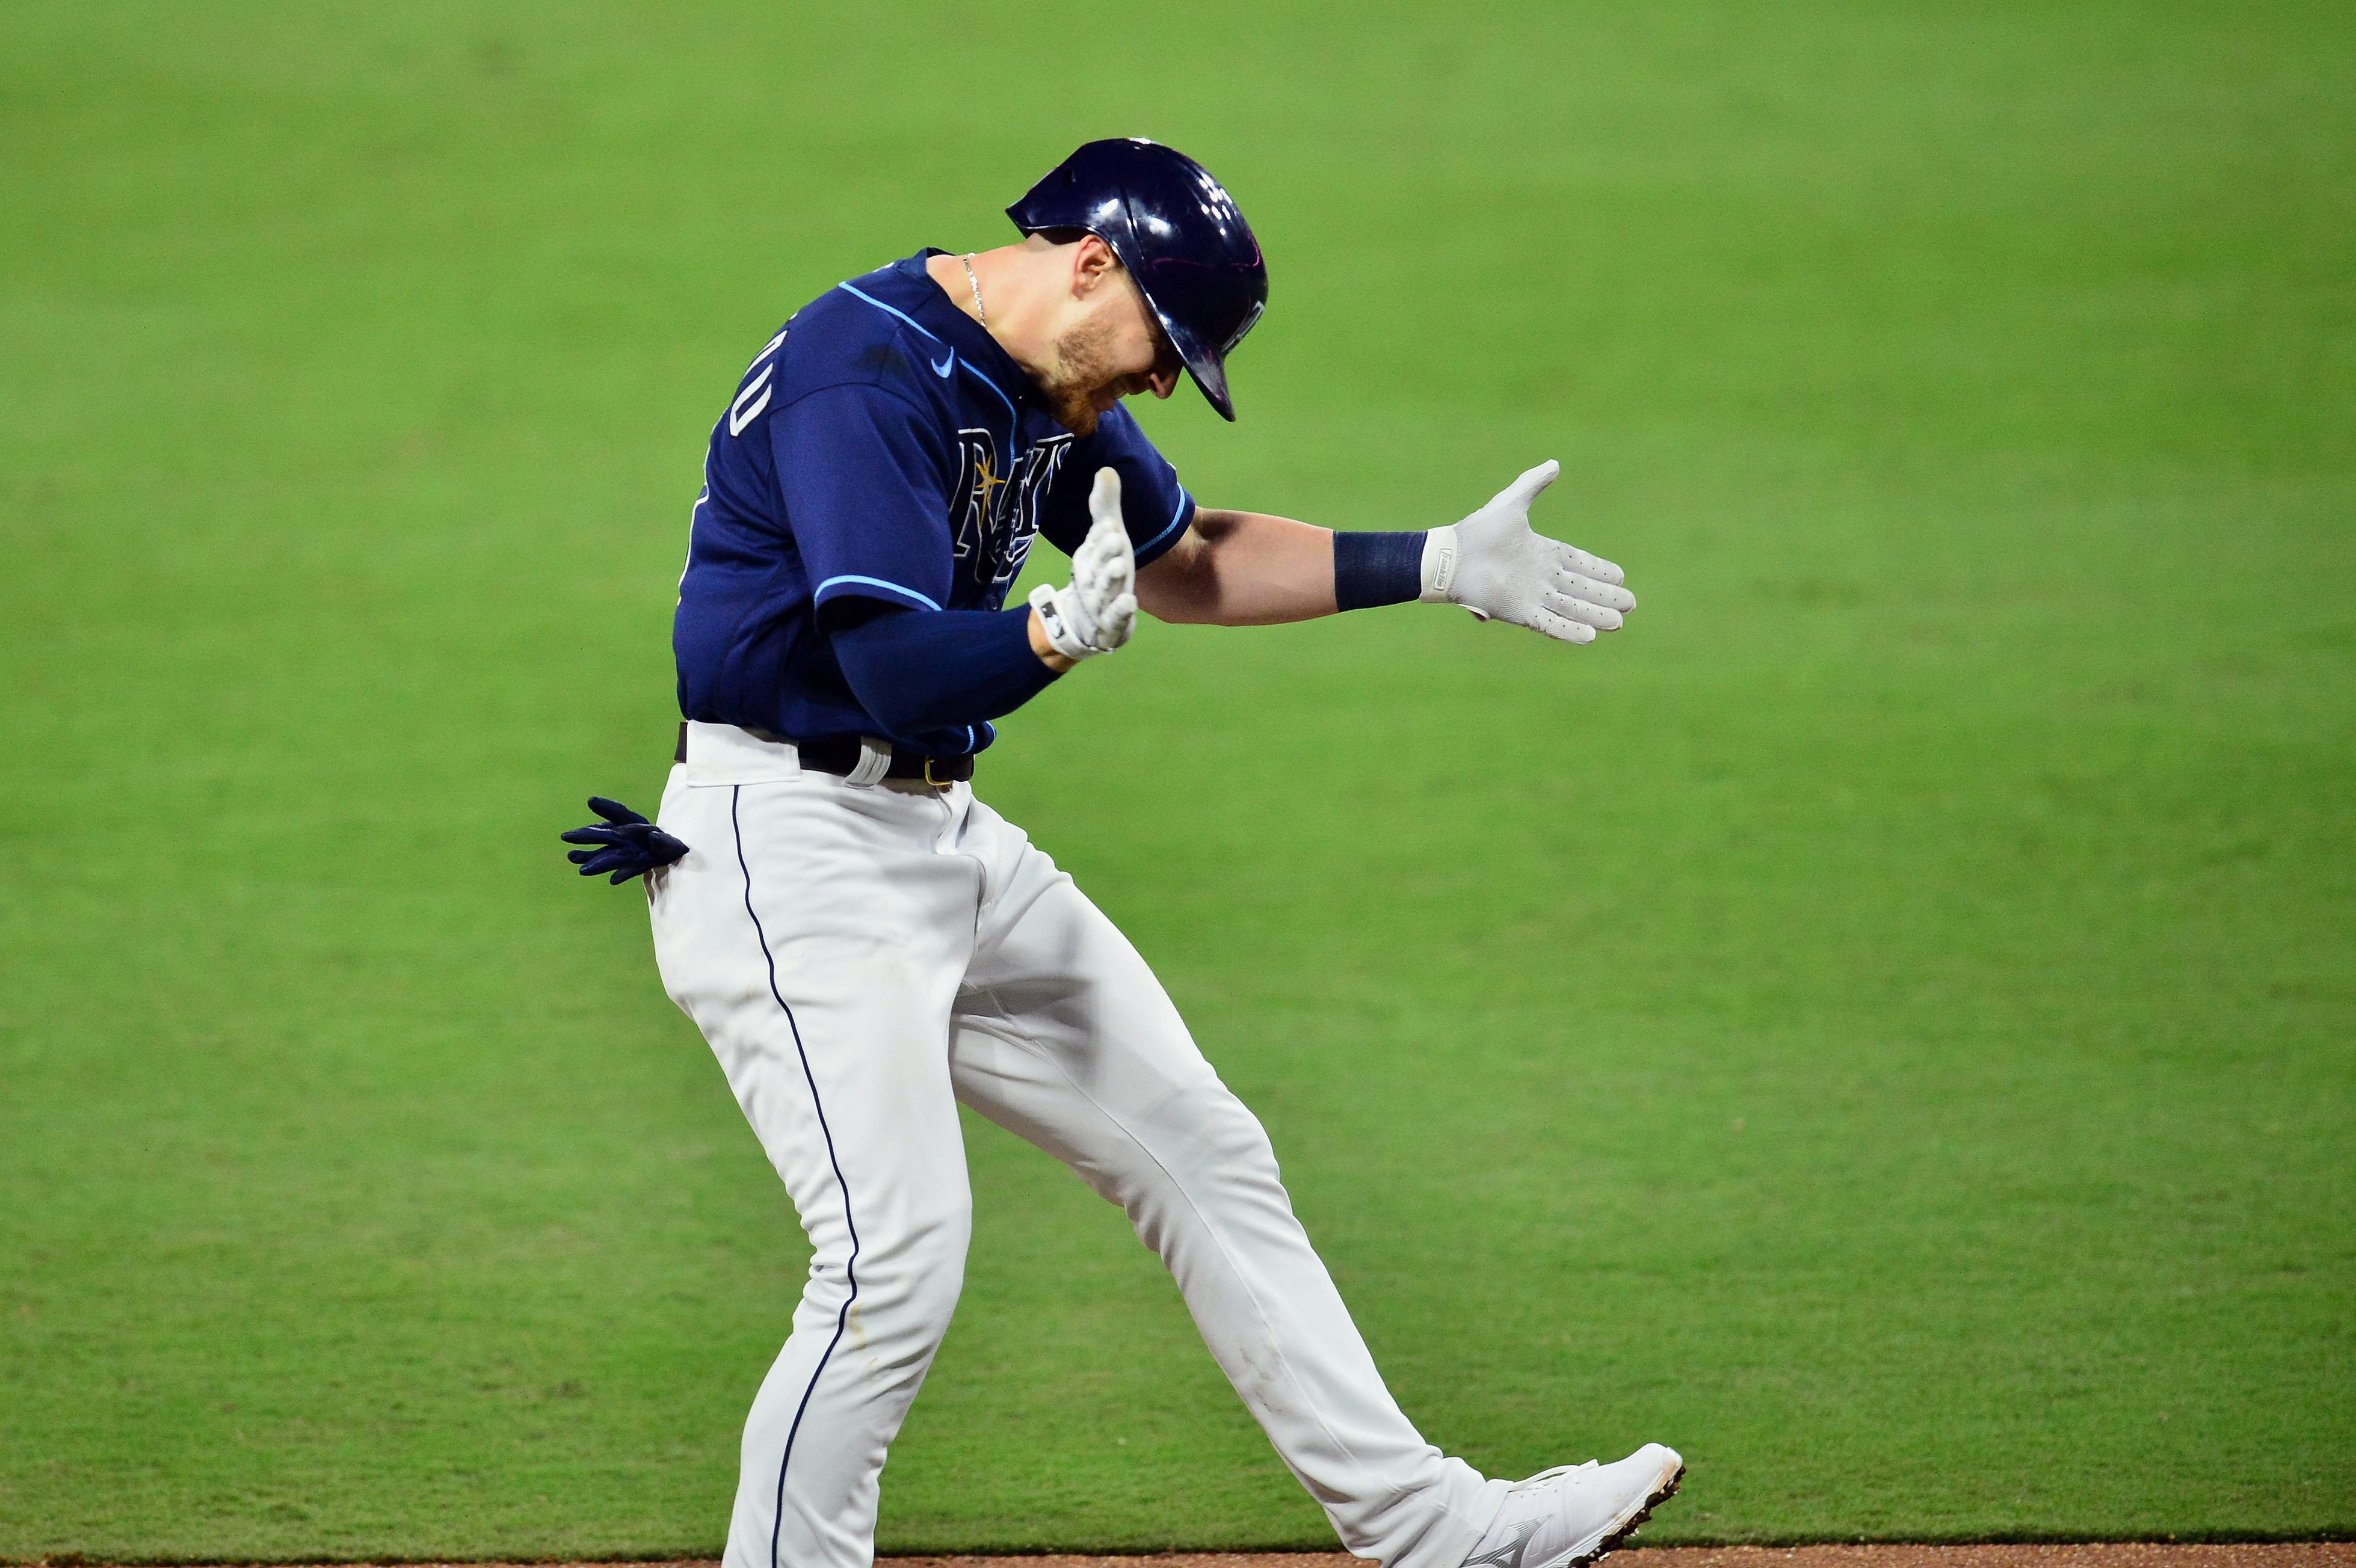 Rays revenge home run knocks off Yankees in winner-take-all Game 5, Tampa Bay returns to ALCS for first time since 2008